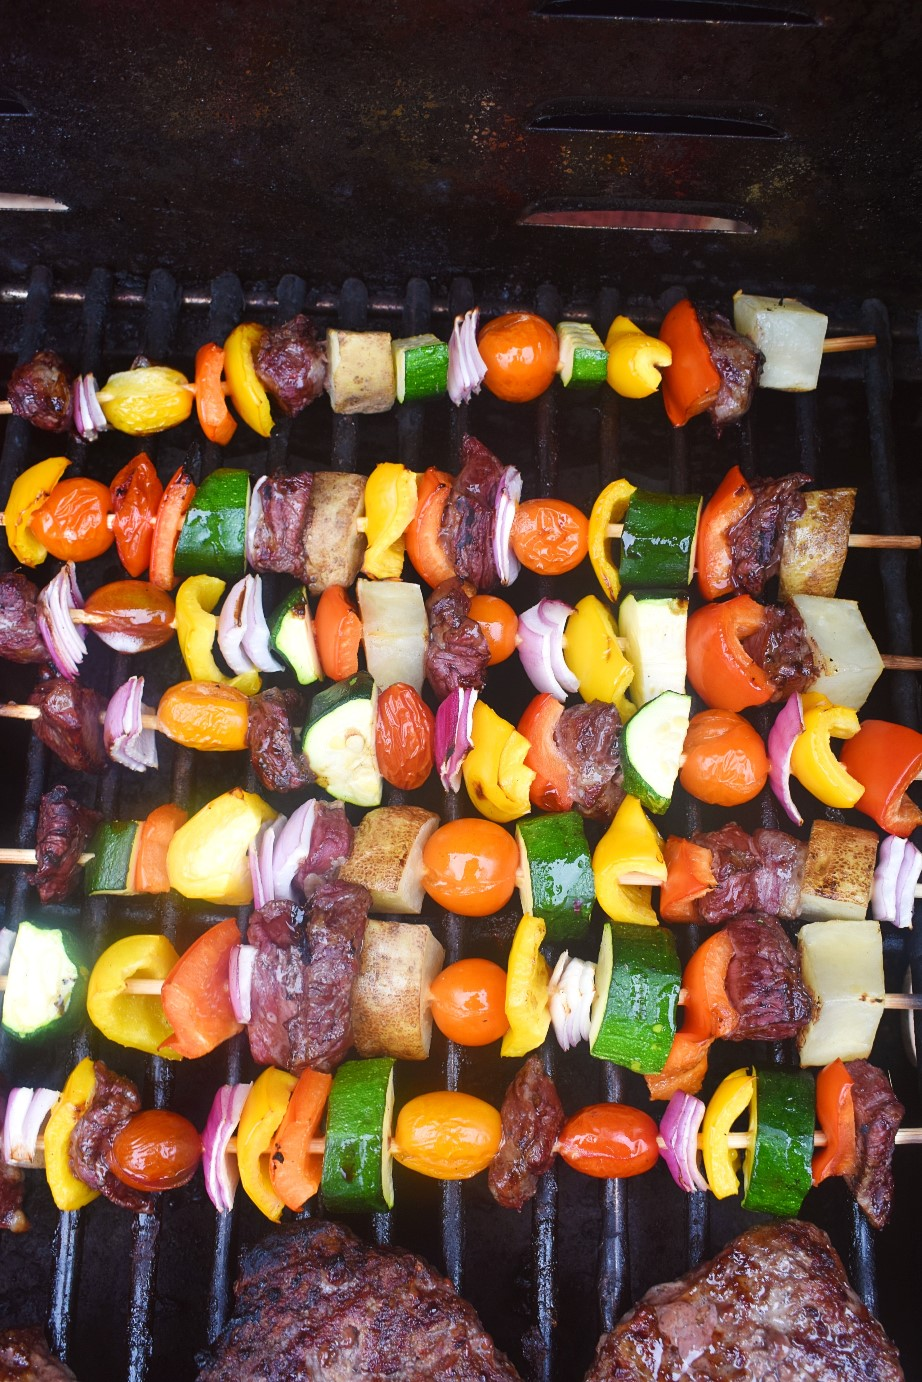 Steak kebabs on the grill